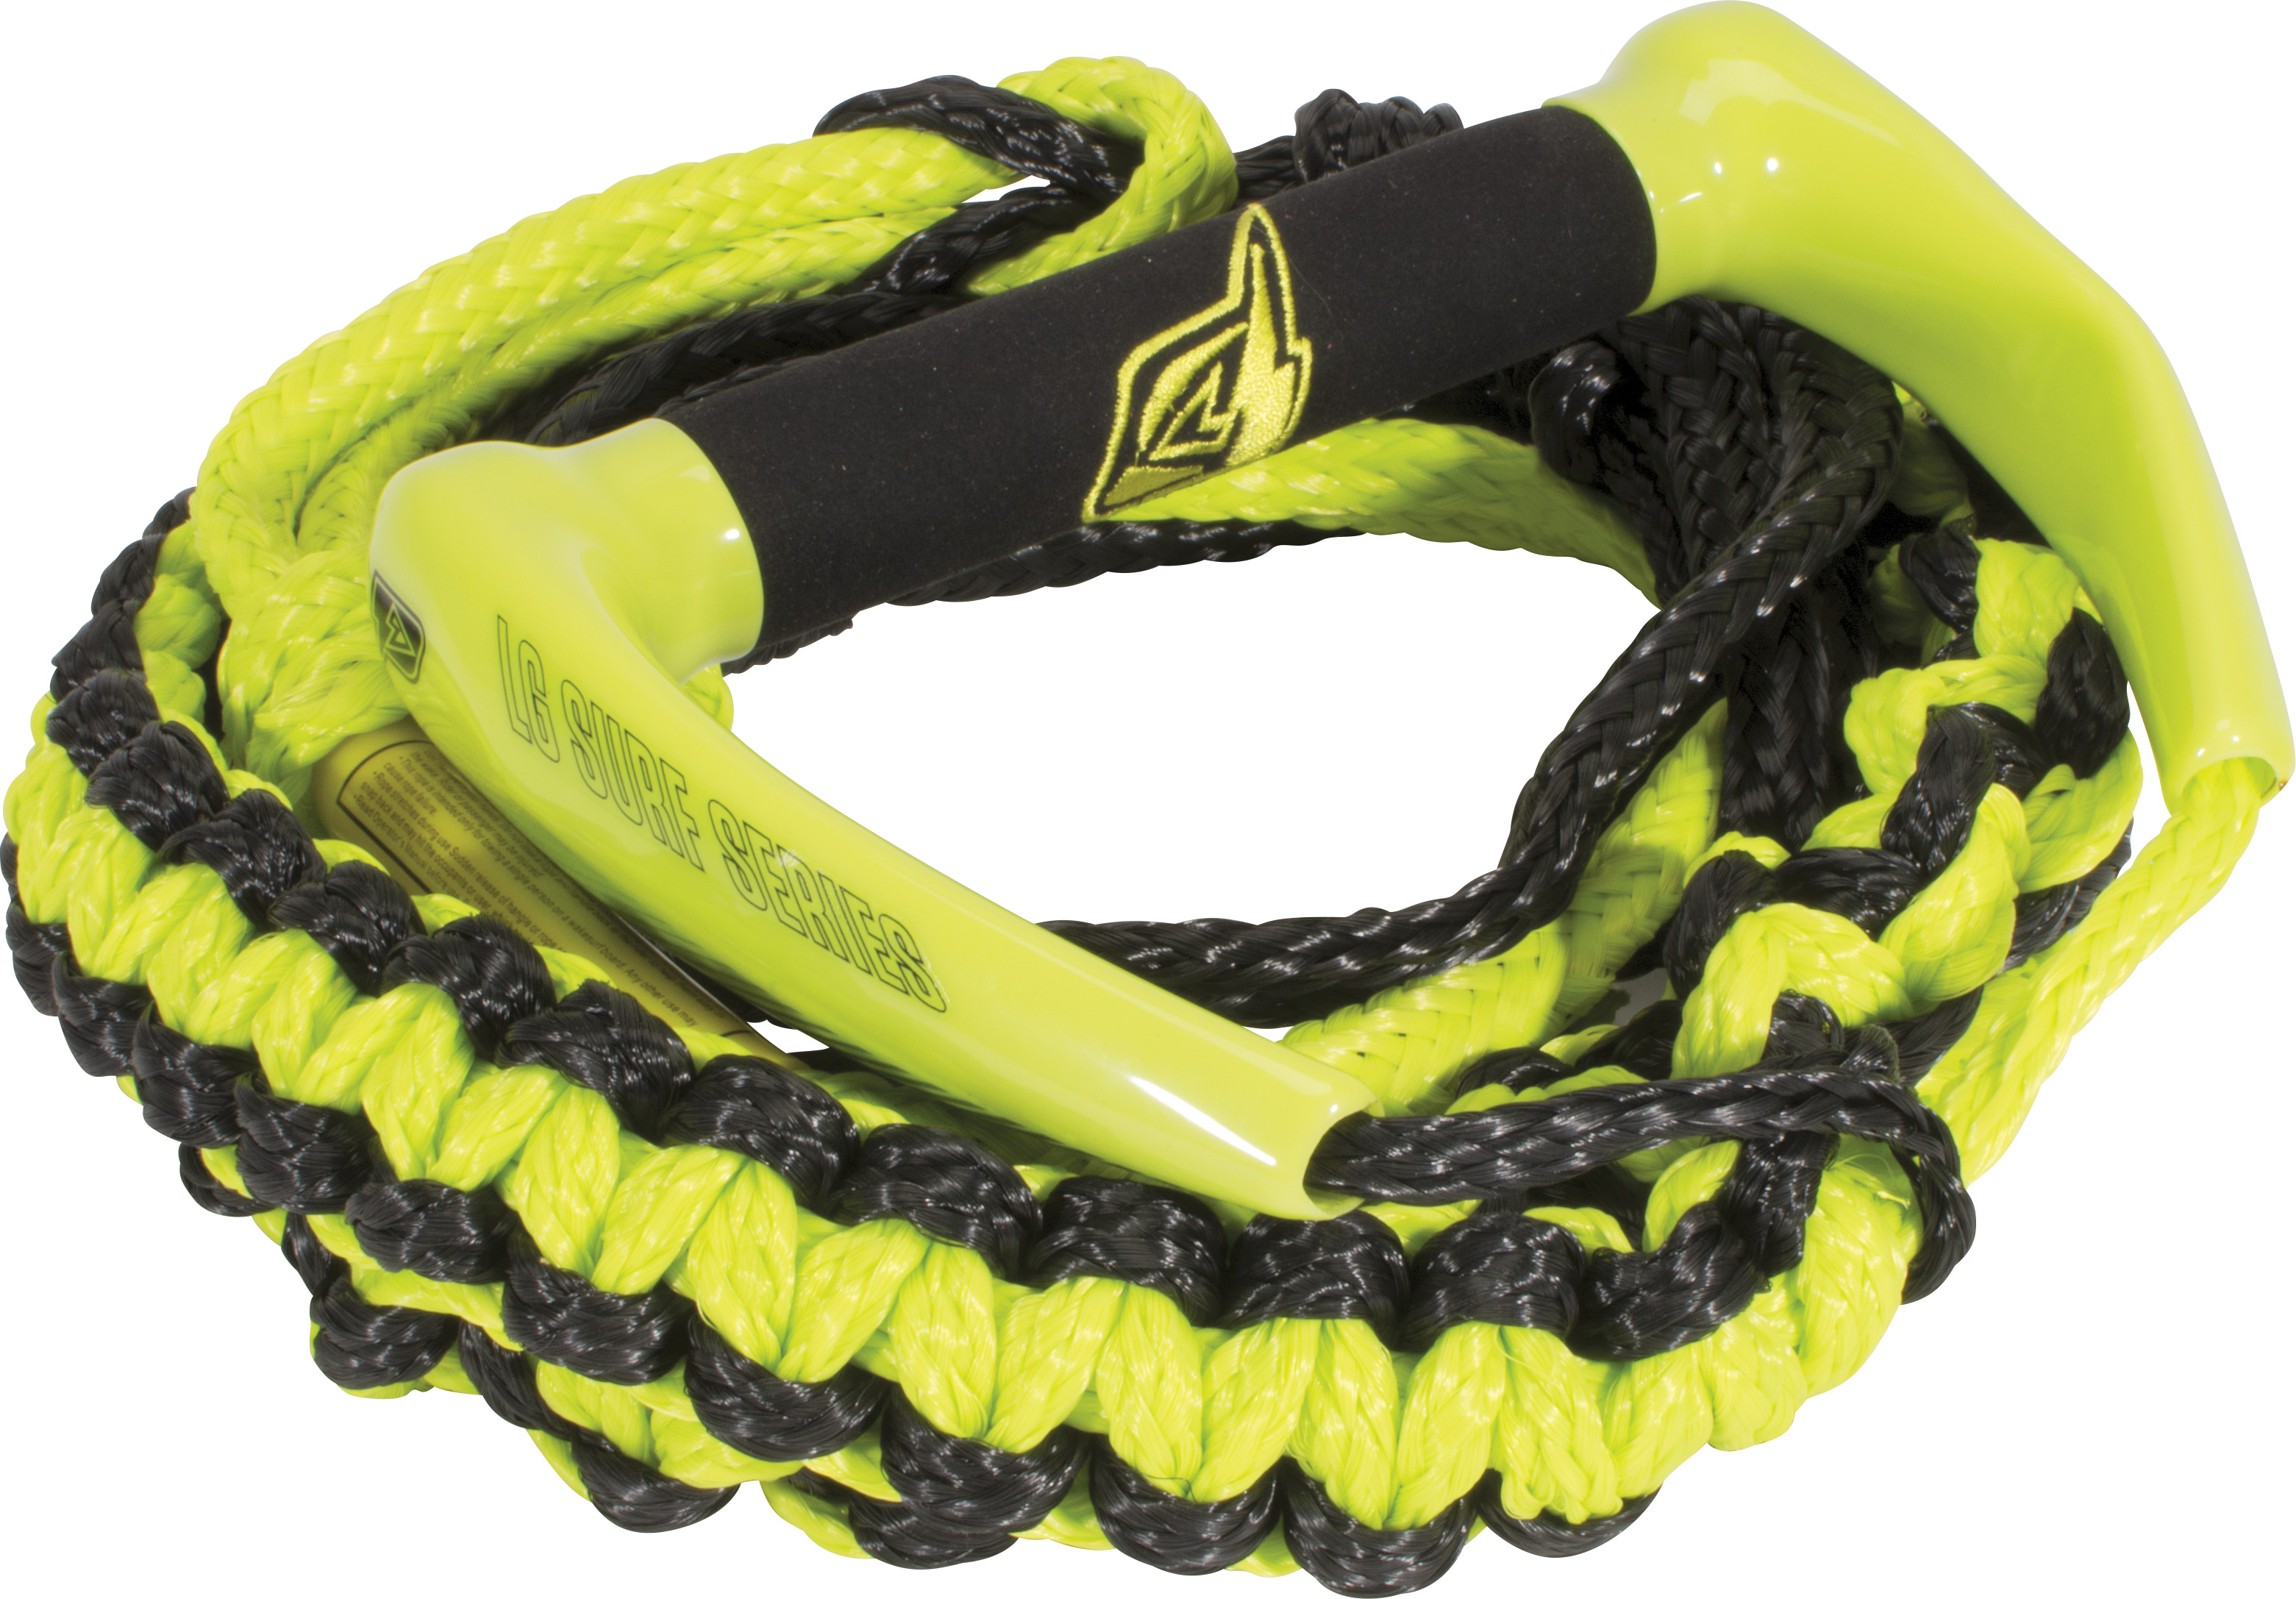 20' LG SURF ROPE W/HANDLE PACKAGE - GREEN CONNELLY 2018